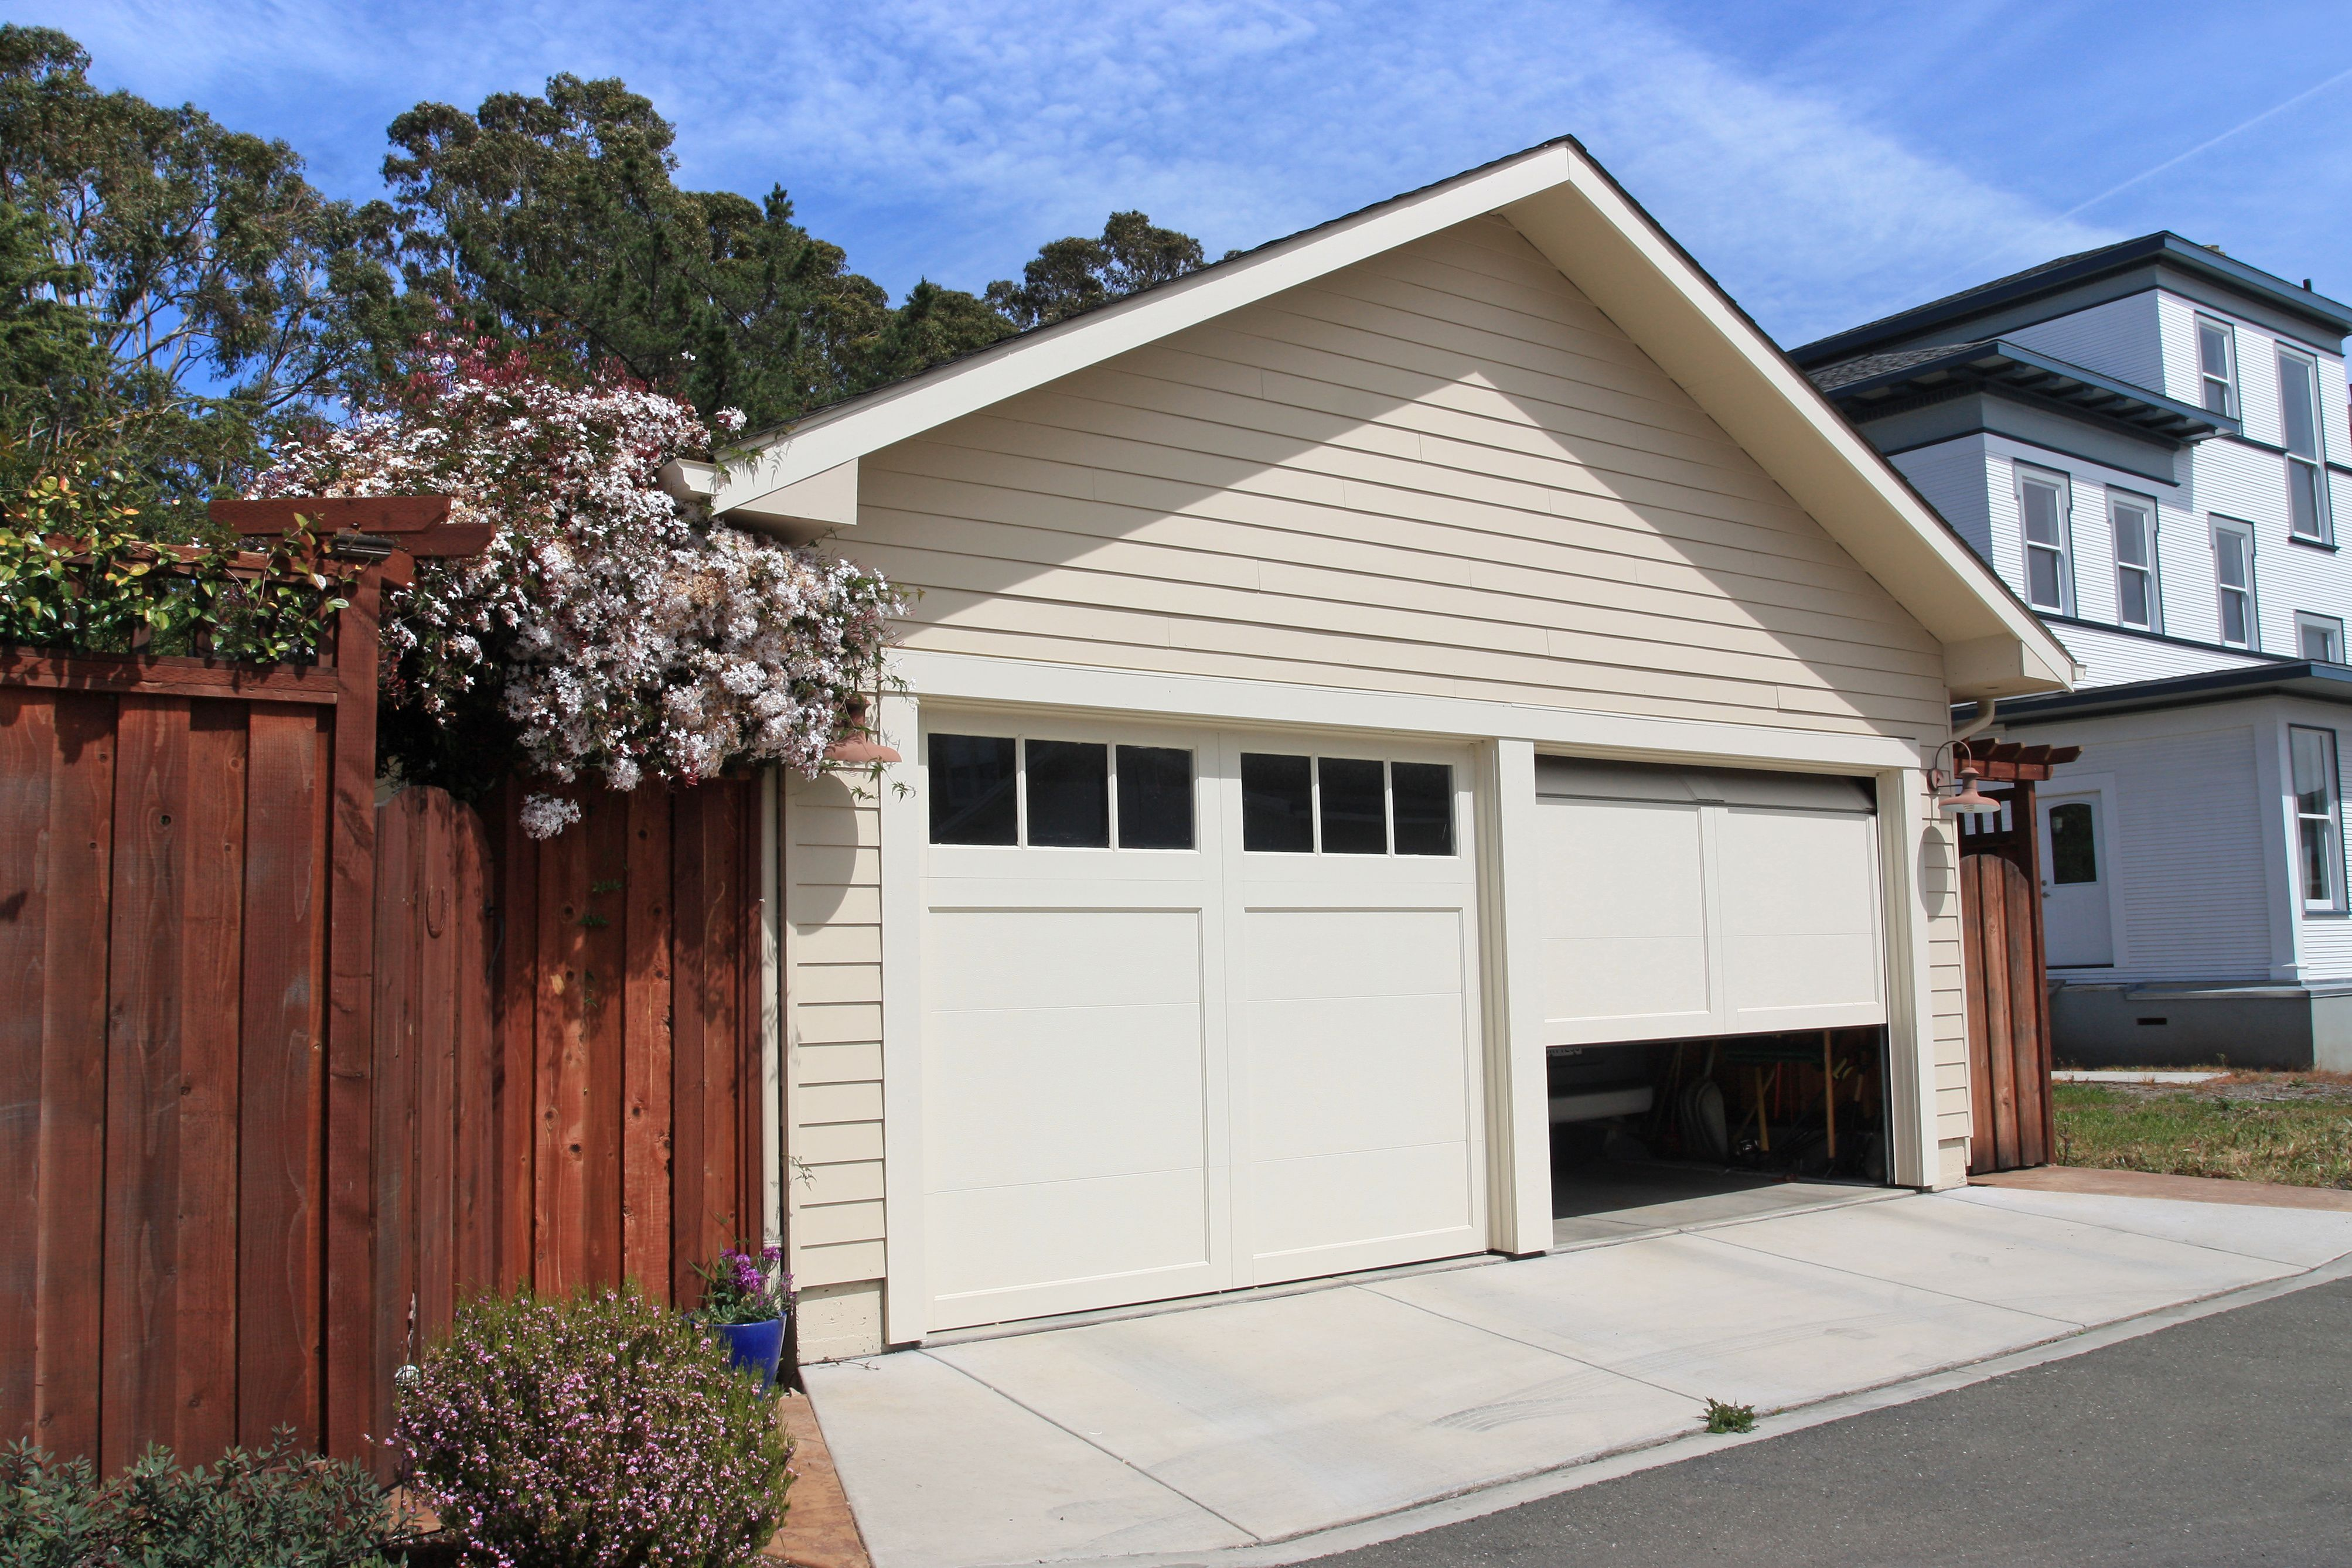 Looking For Custom Designed Garage Door Call Unique Garage Doors Repair Today 800 972 8170 Garage Garaged Garage Doors Garage Door Installation Door Repair